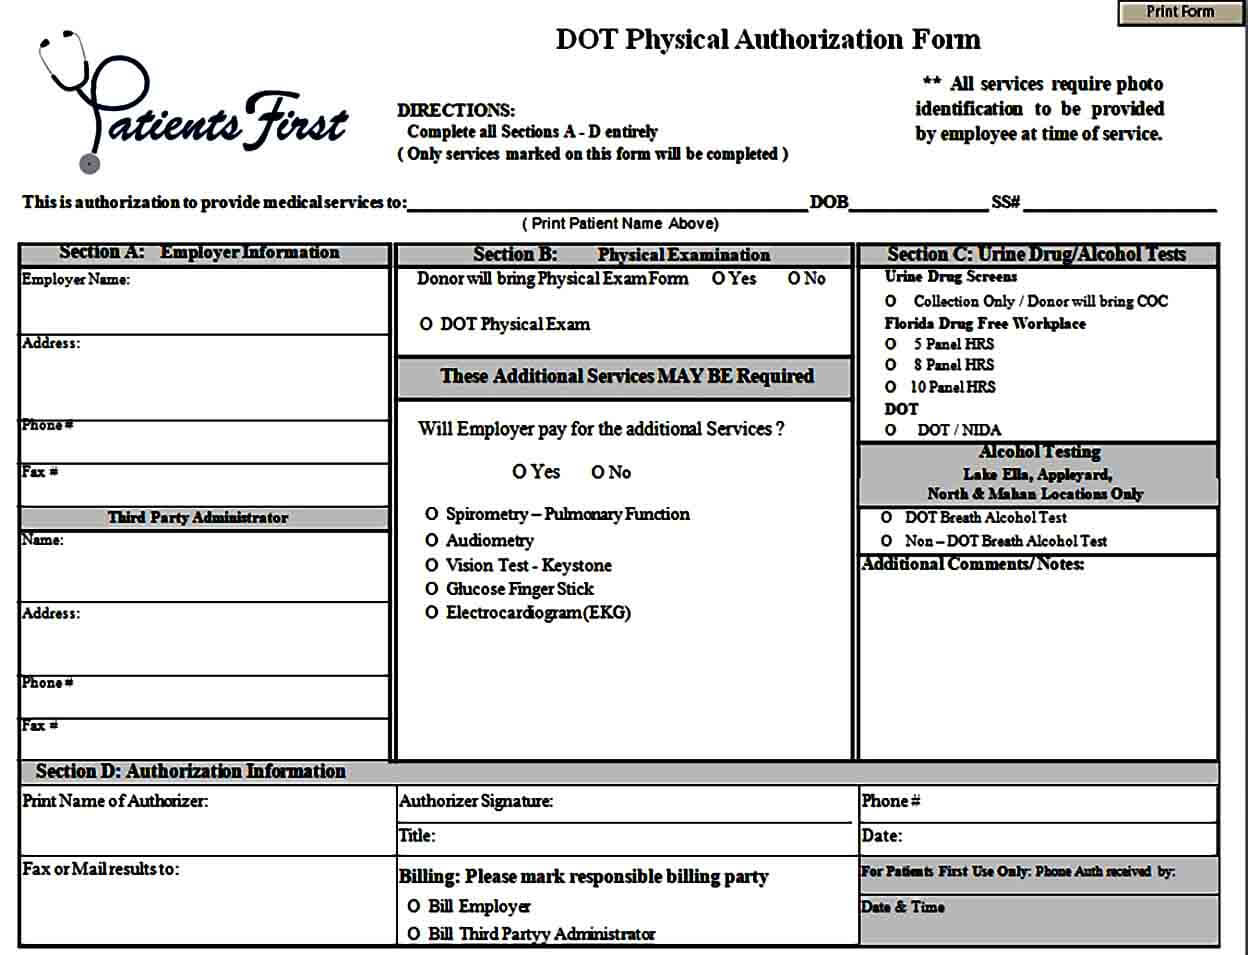 DOT Physical Authorization Form